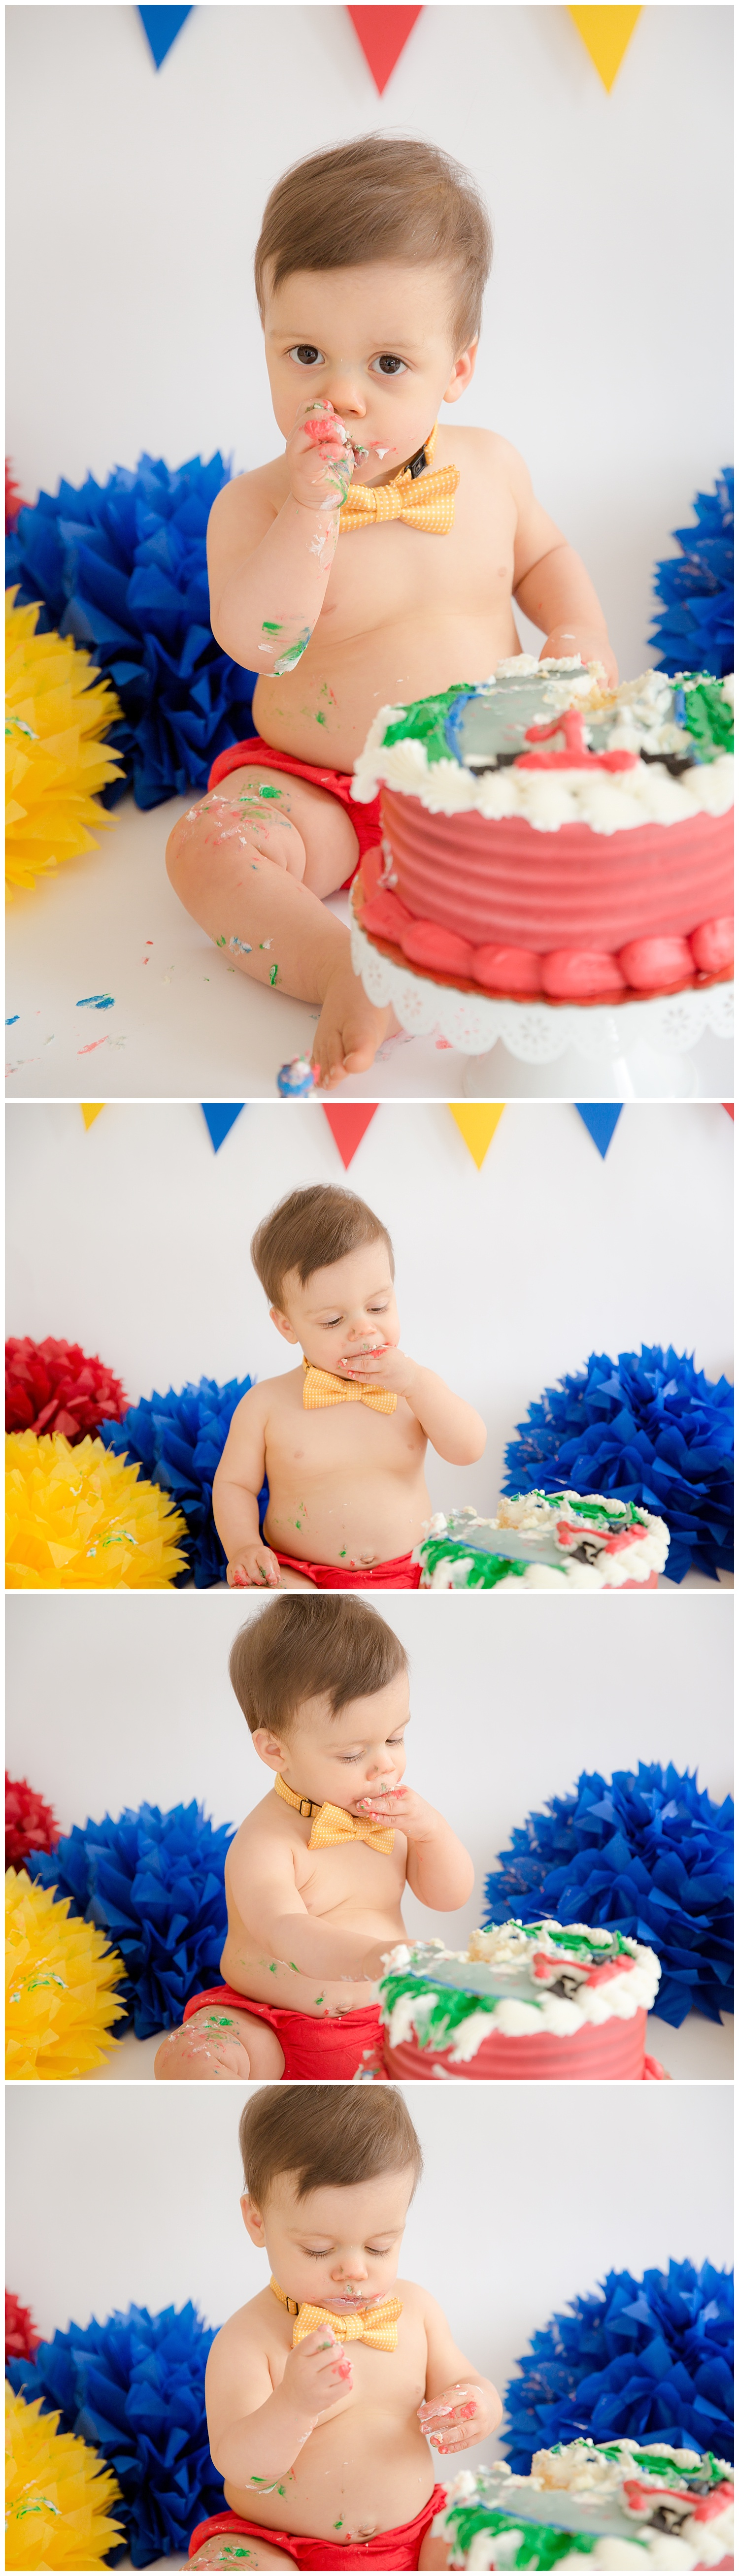 little boy sucking his thumb during his first birthday cake smash